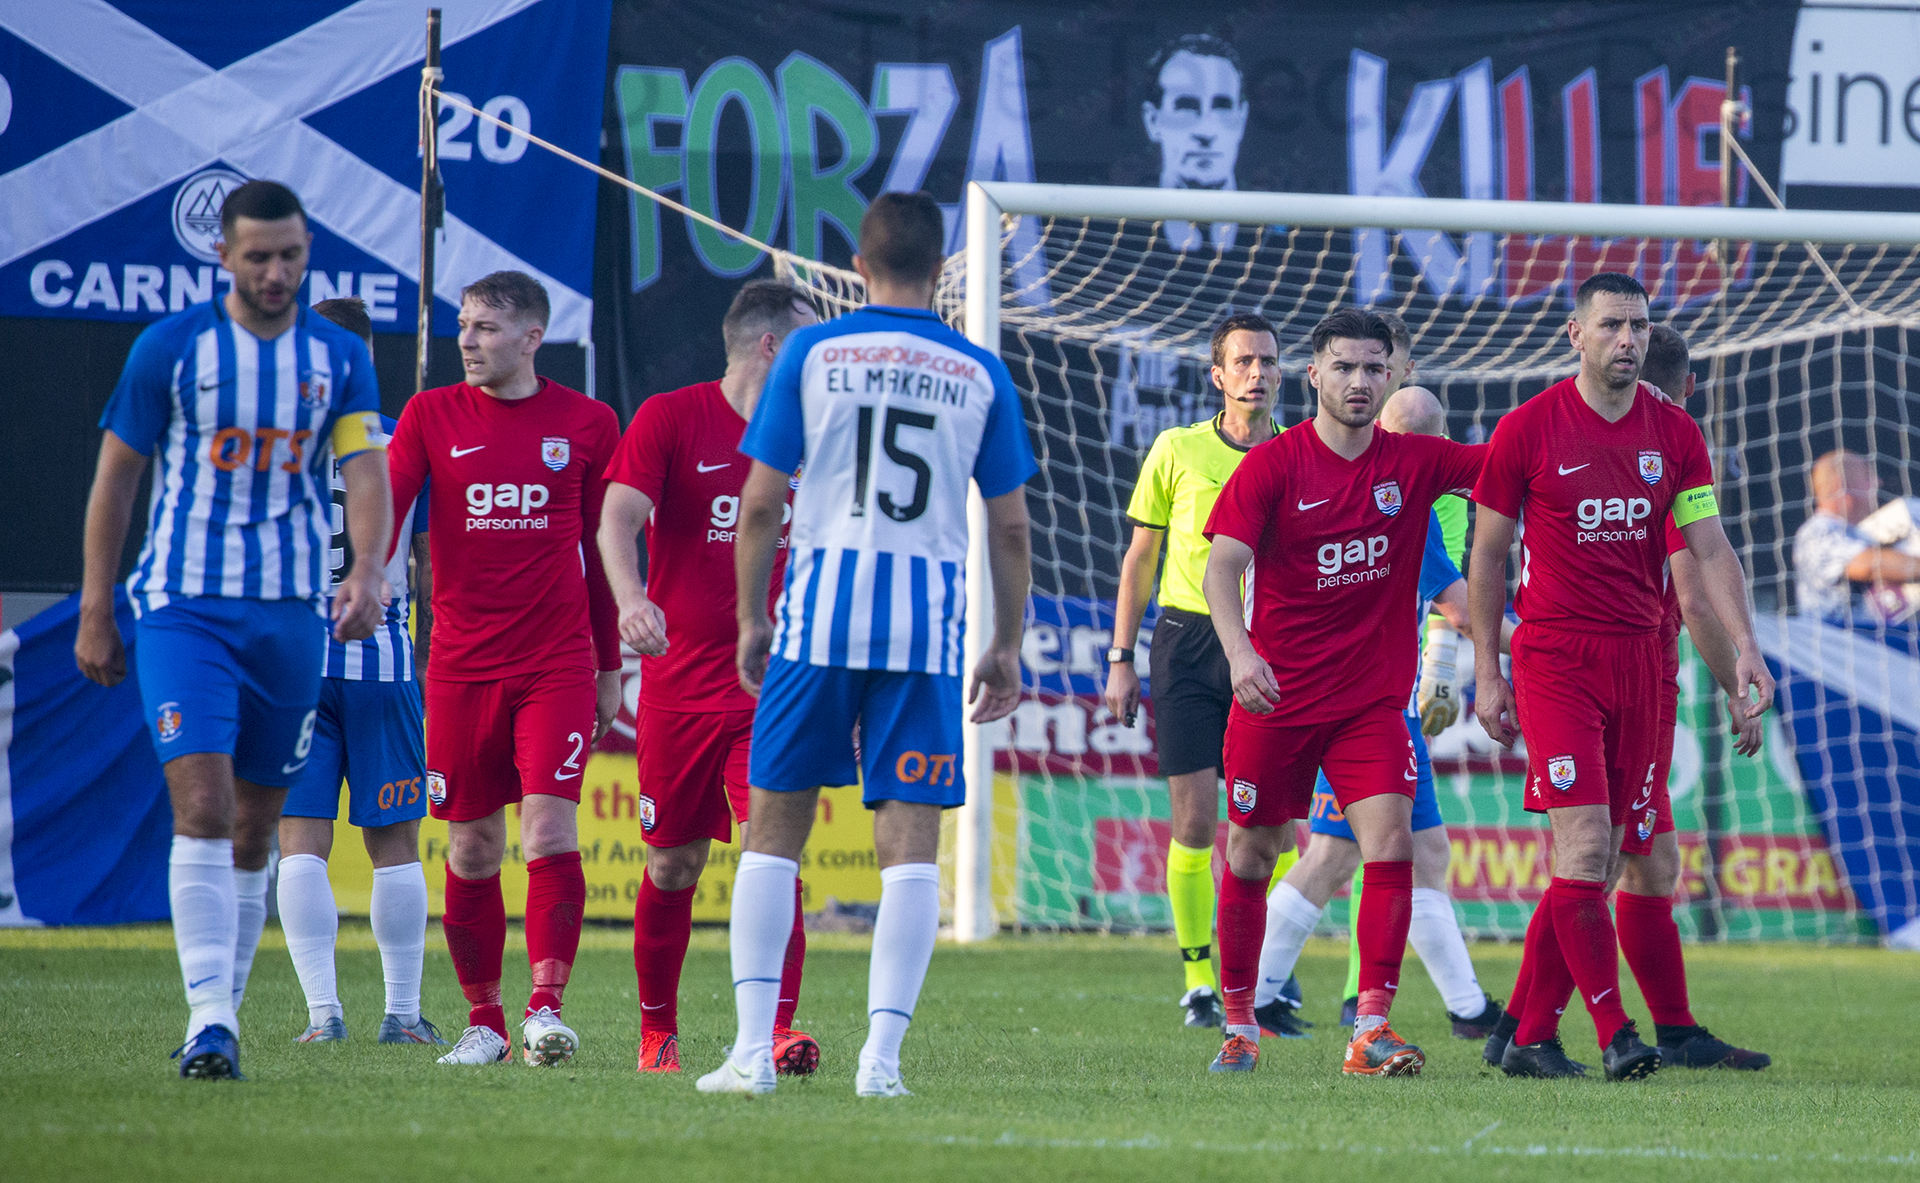 Disappointed Nomads players look on as Kilmarnock celebrate their equaliser | © NCM Media